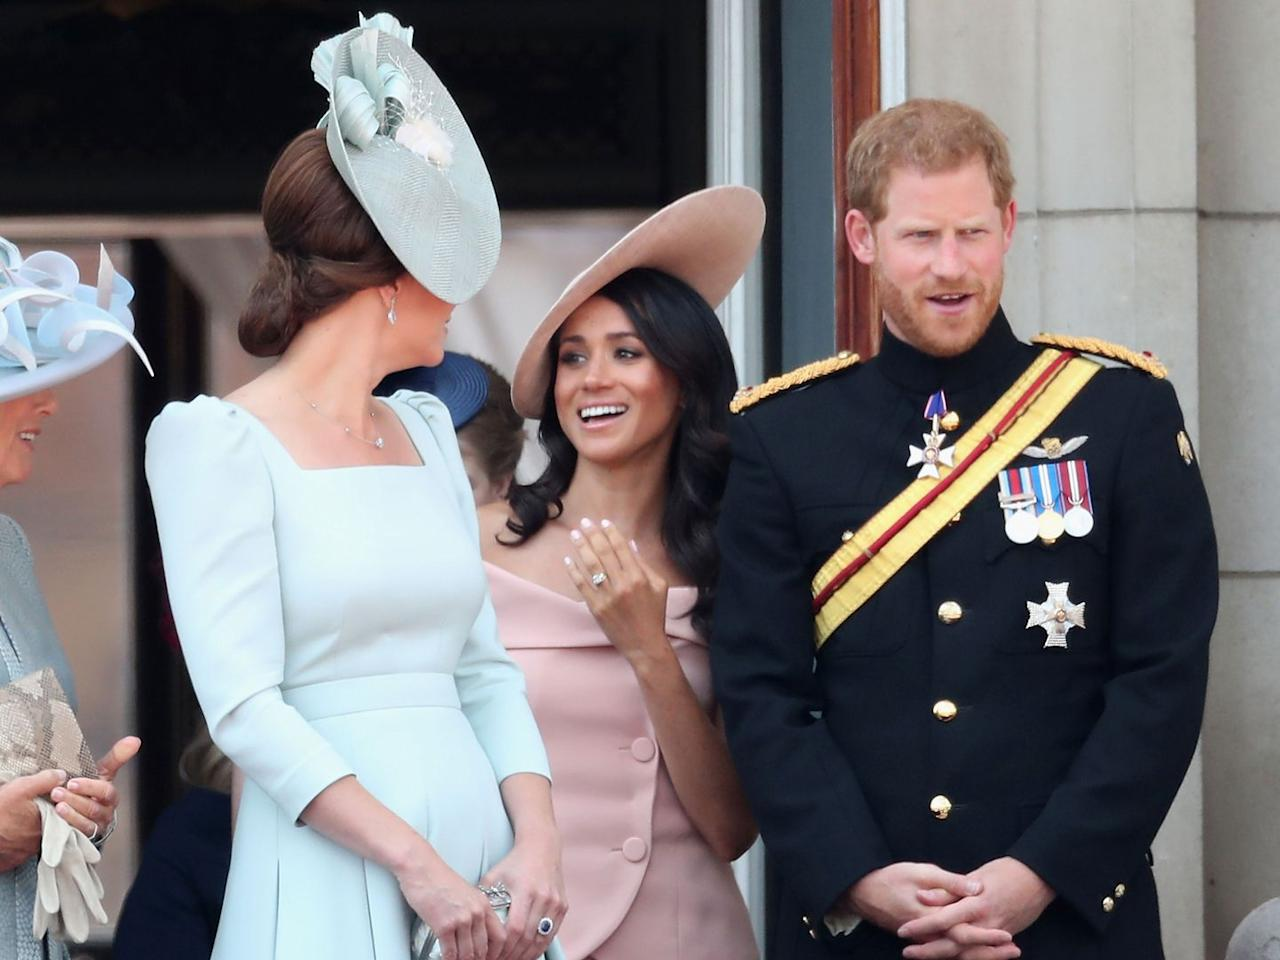 "<p>Although <a rel=""nofollow"" href=""https://www.harpersbazaar.com/uk/celebrities/news/a21250006/meghan-markle-prince-harry-trooping-colour-parade-support-words-nervous/"">Meghan was said to be nervous</a>, she looked at ease when chatting to Kate.</p>"